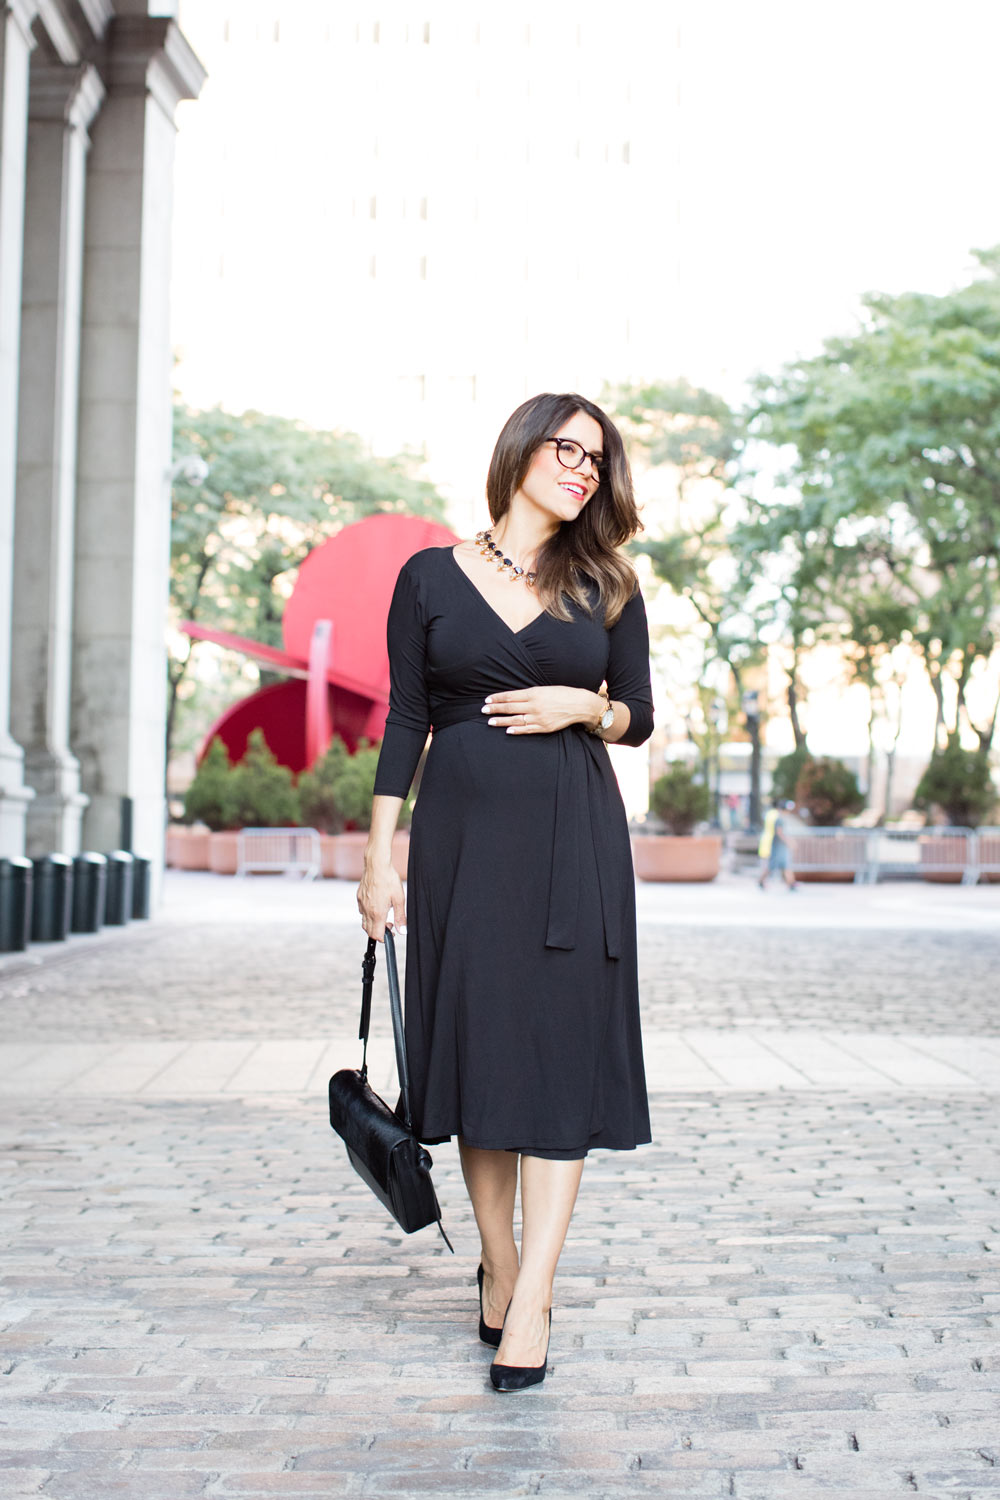 of Mercer work dresses what to wear to work workwear mott tweed dress sutton wrap dress maternity style pregnancy corporate catwalk new york city fashion blogger nyc